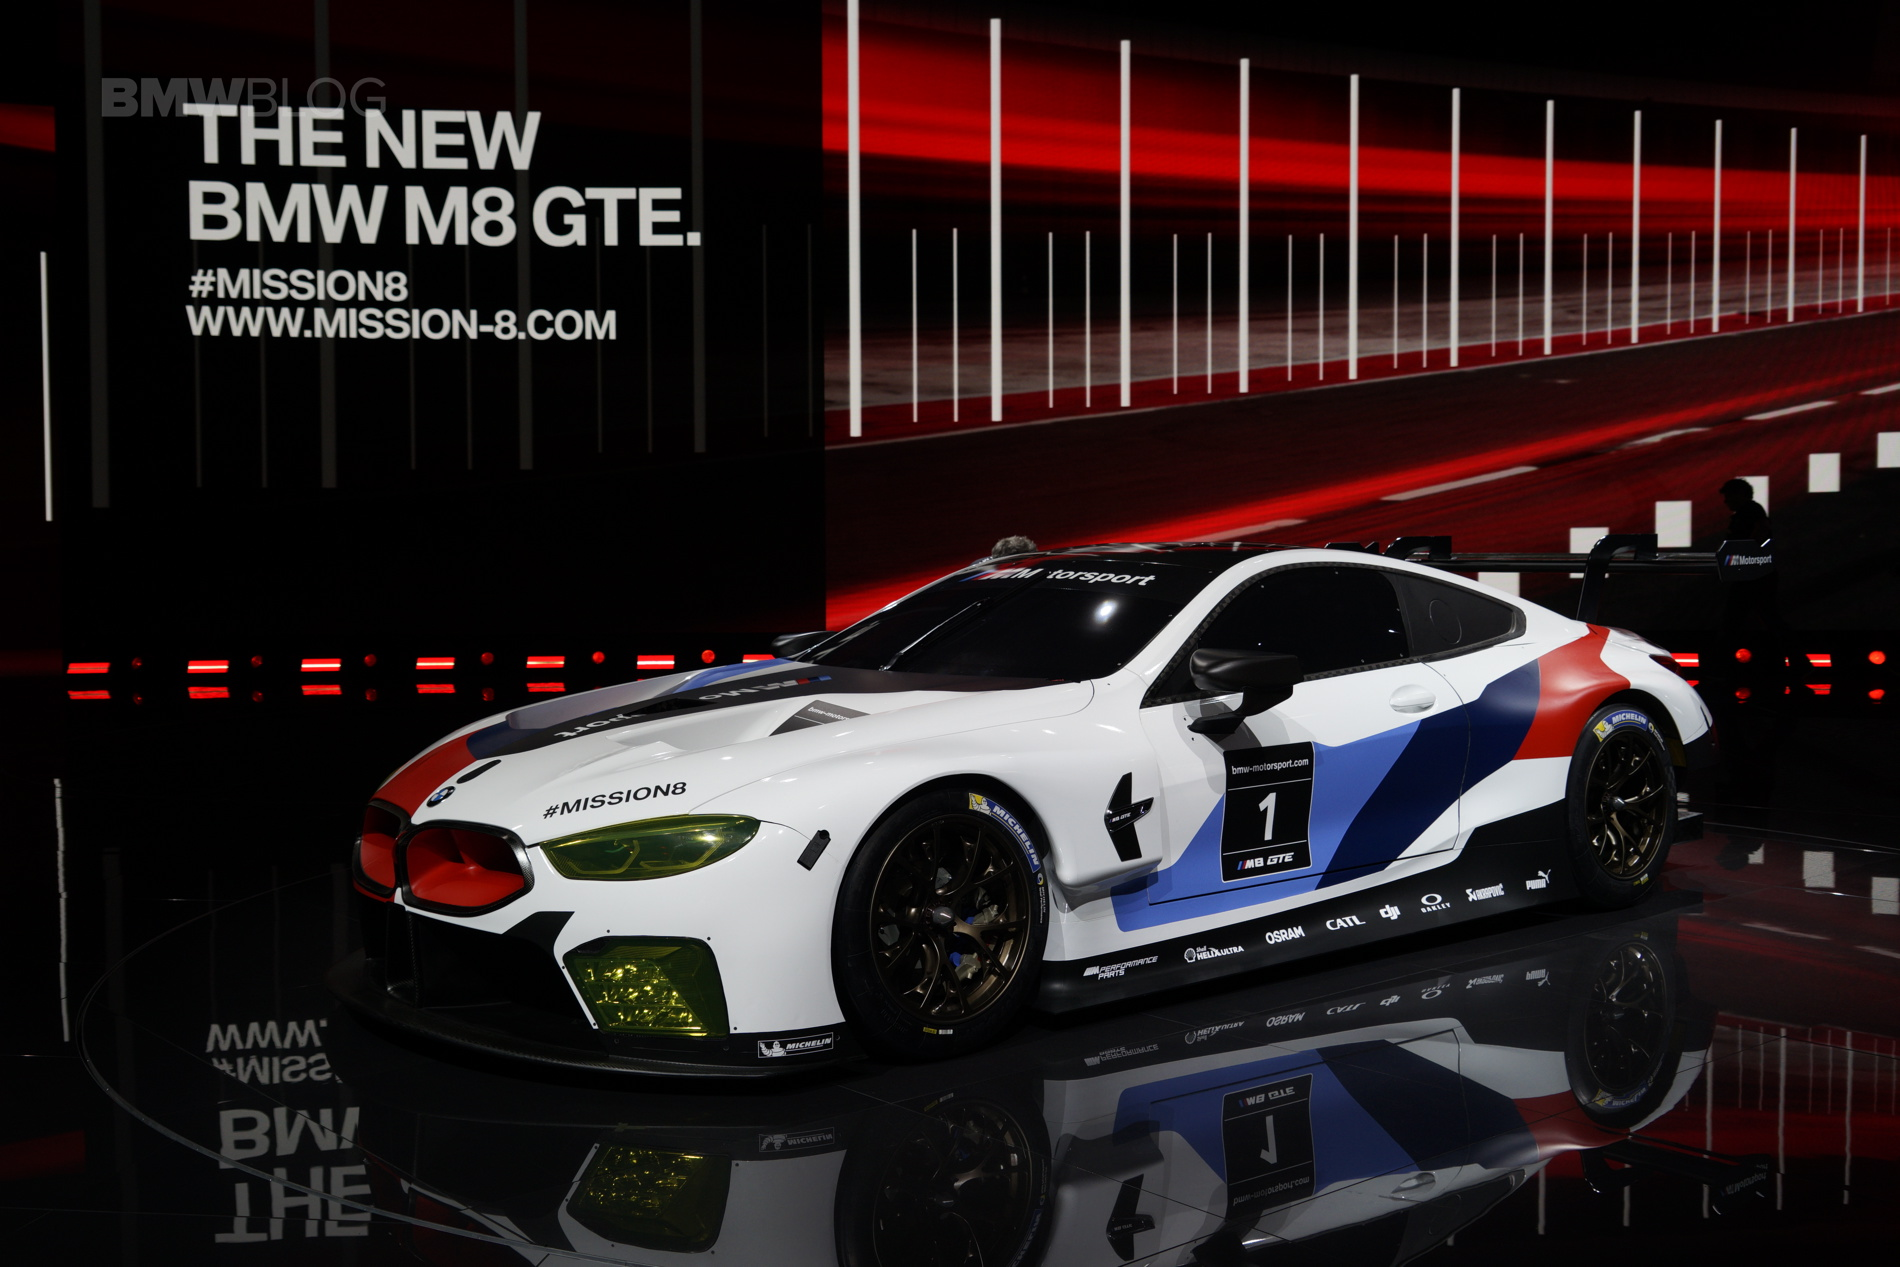 Bmw M8 Gte Car For Wec And Imsa On Target Despite Tight